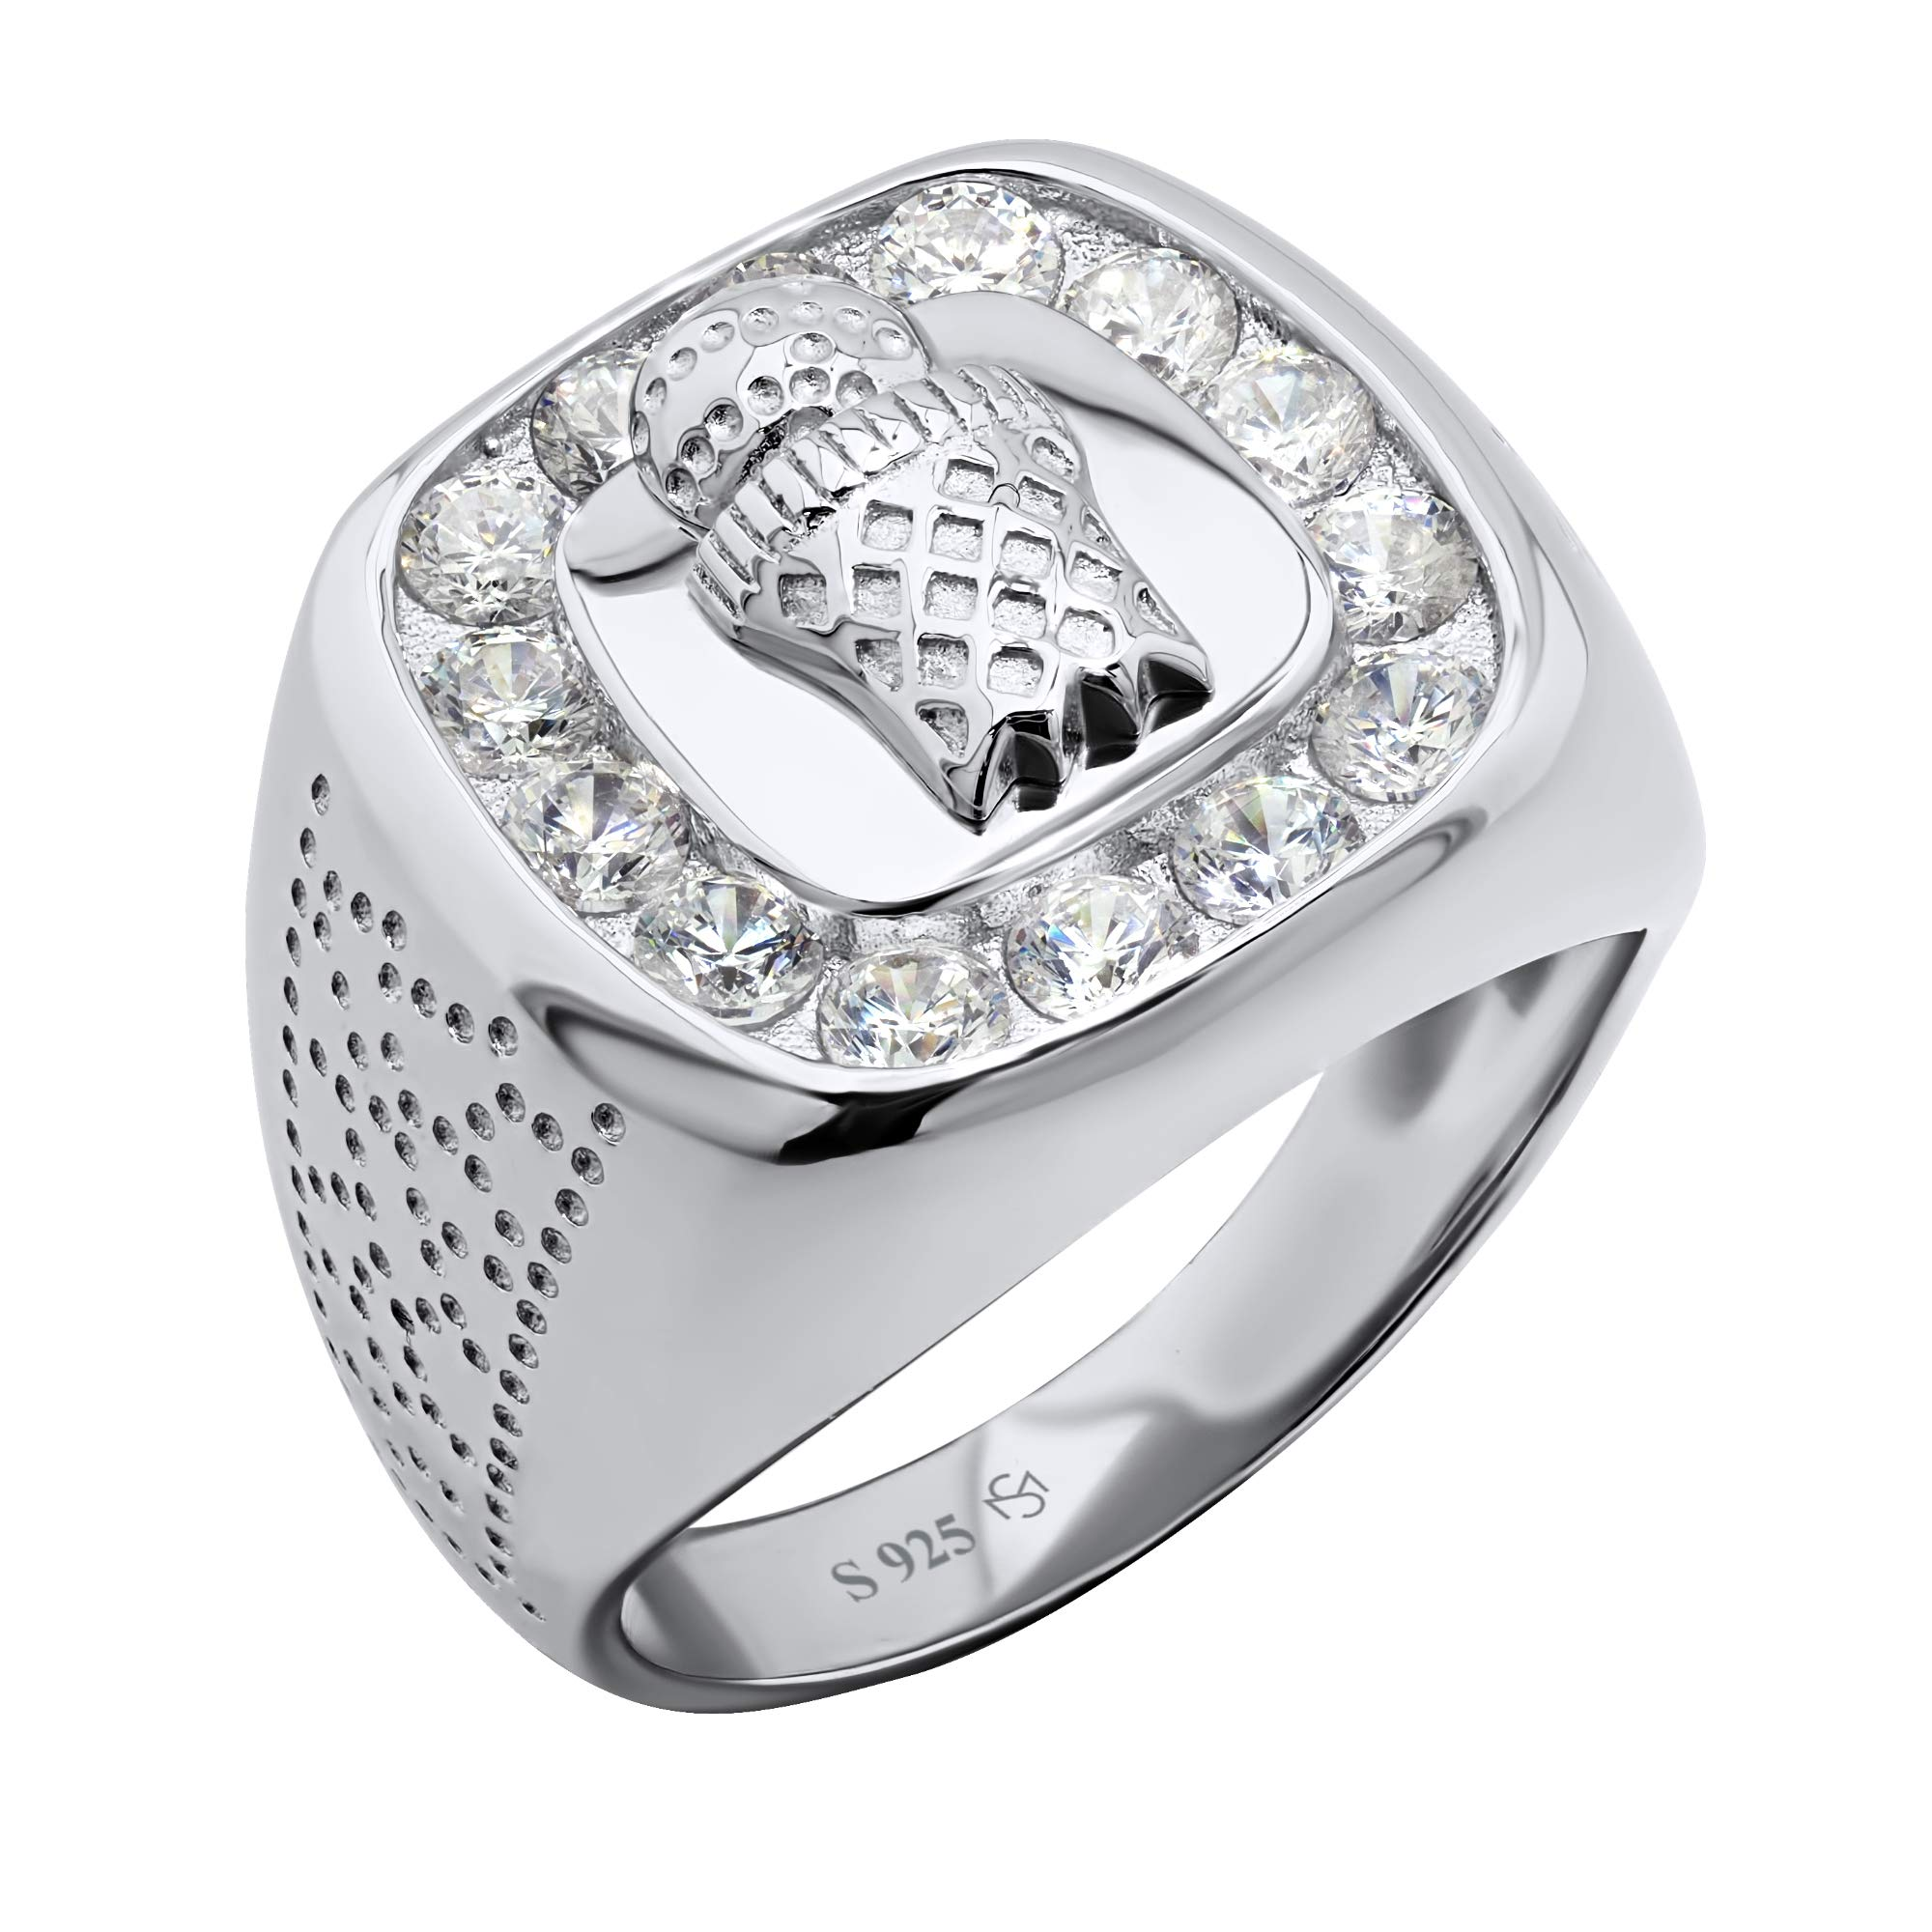 Men's Sterling Silver .925 Ring Featuring a Basketball and Hoop Surrounded by Fancy Channel-Set Cubic Zirconia (CZ) Stones, Platinum Plated